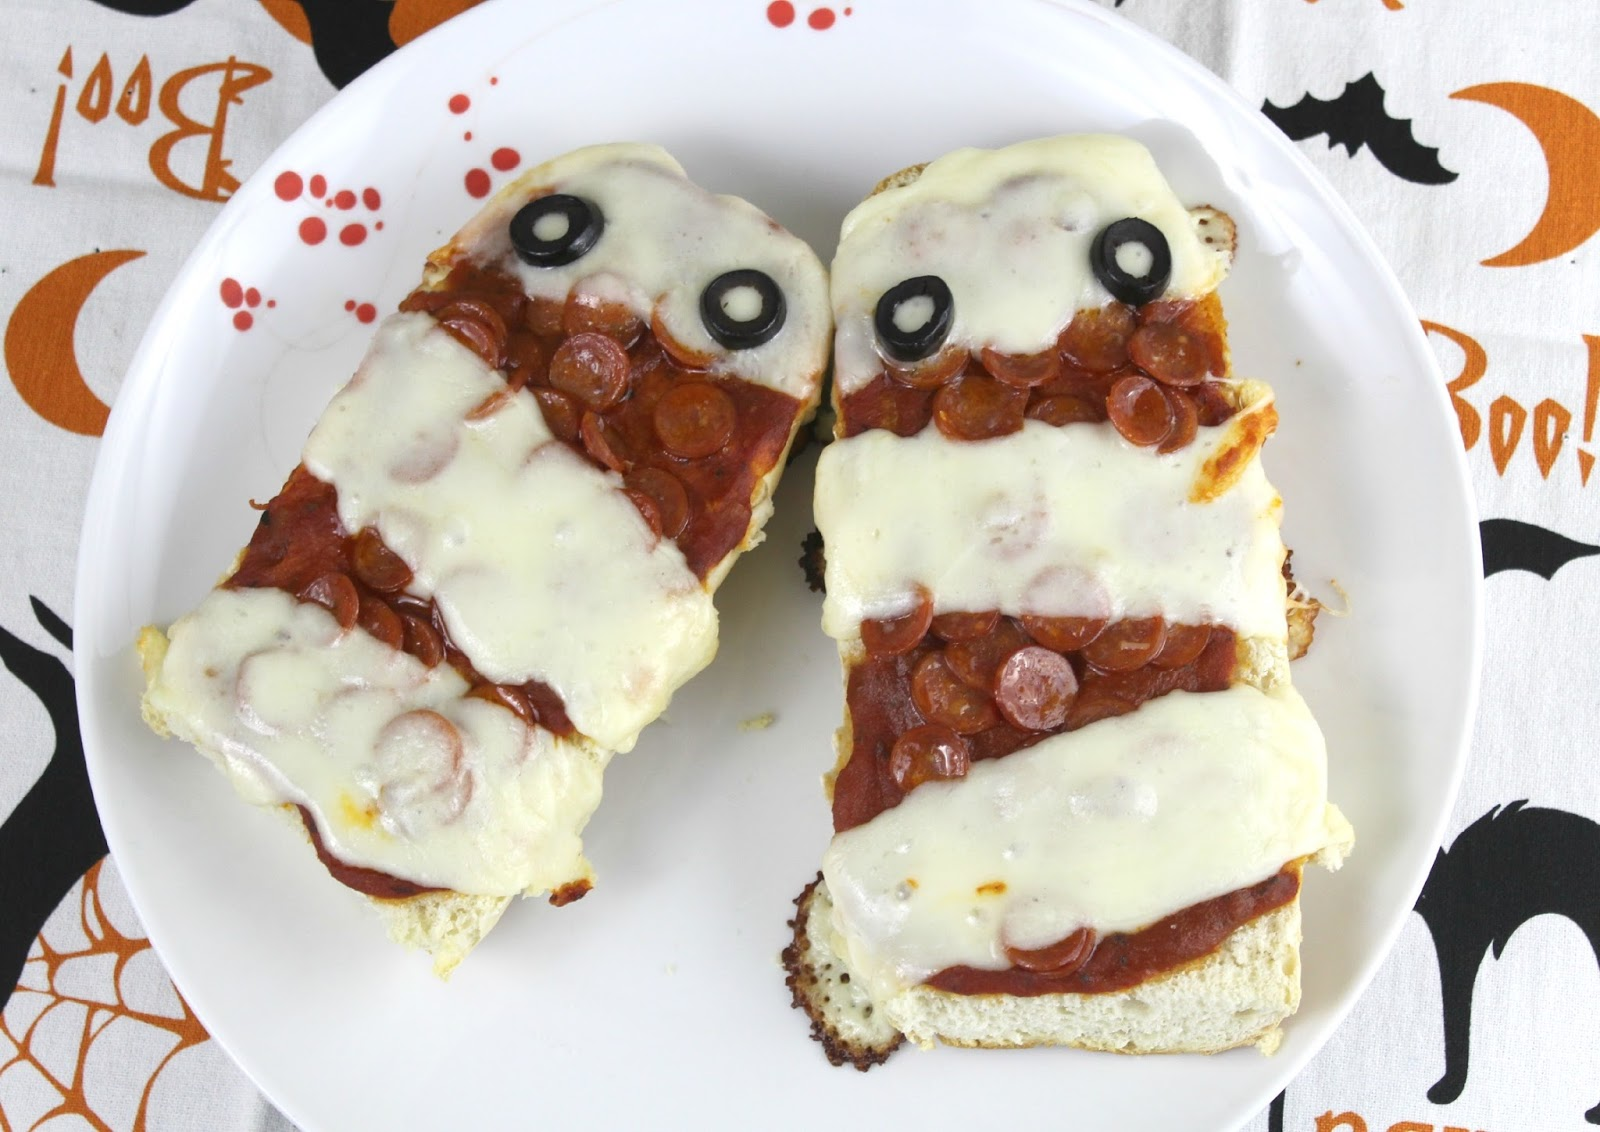 French bread with pizza toppings